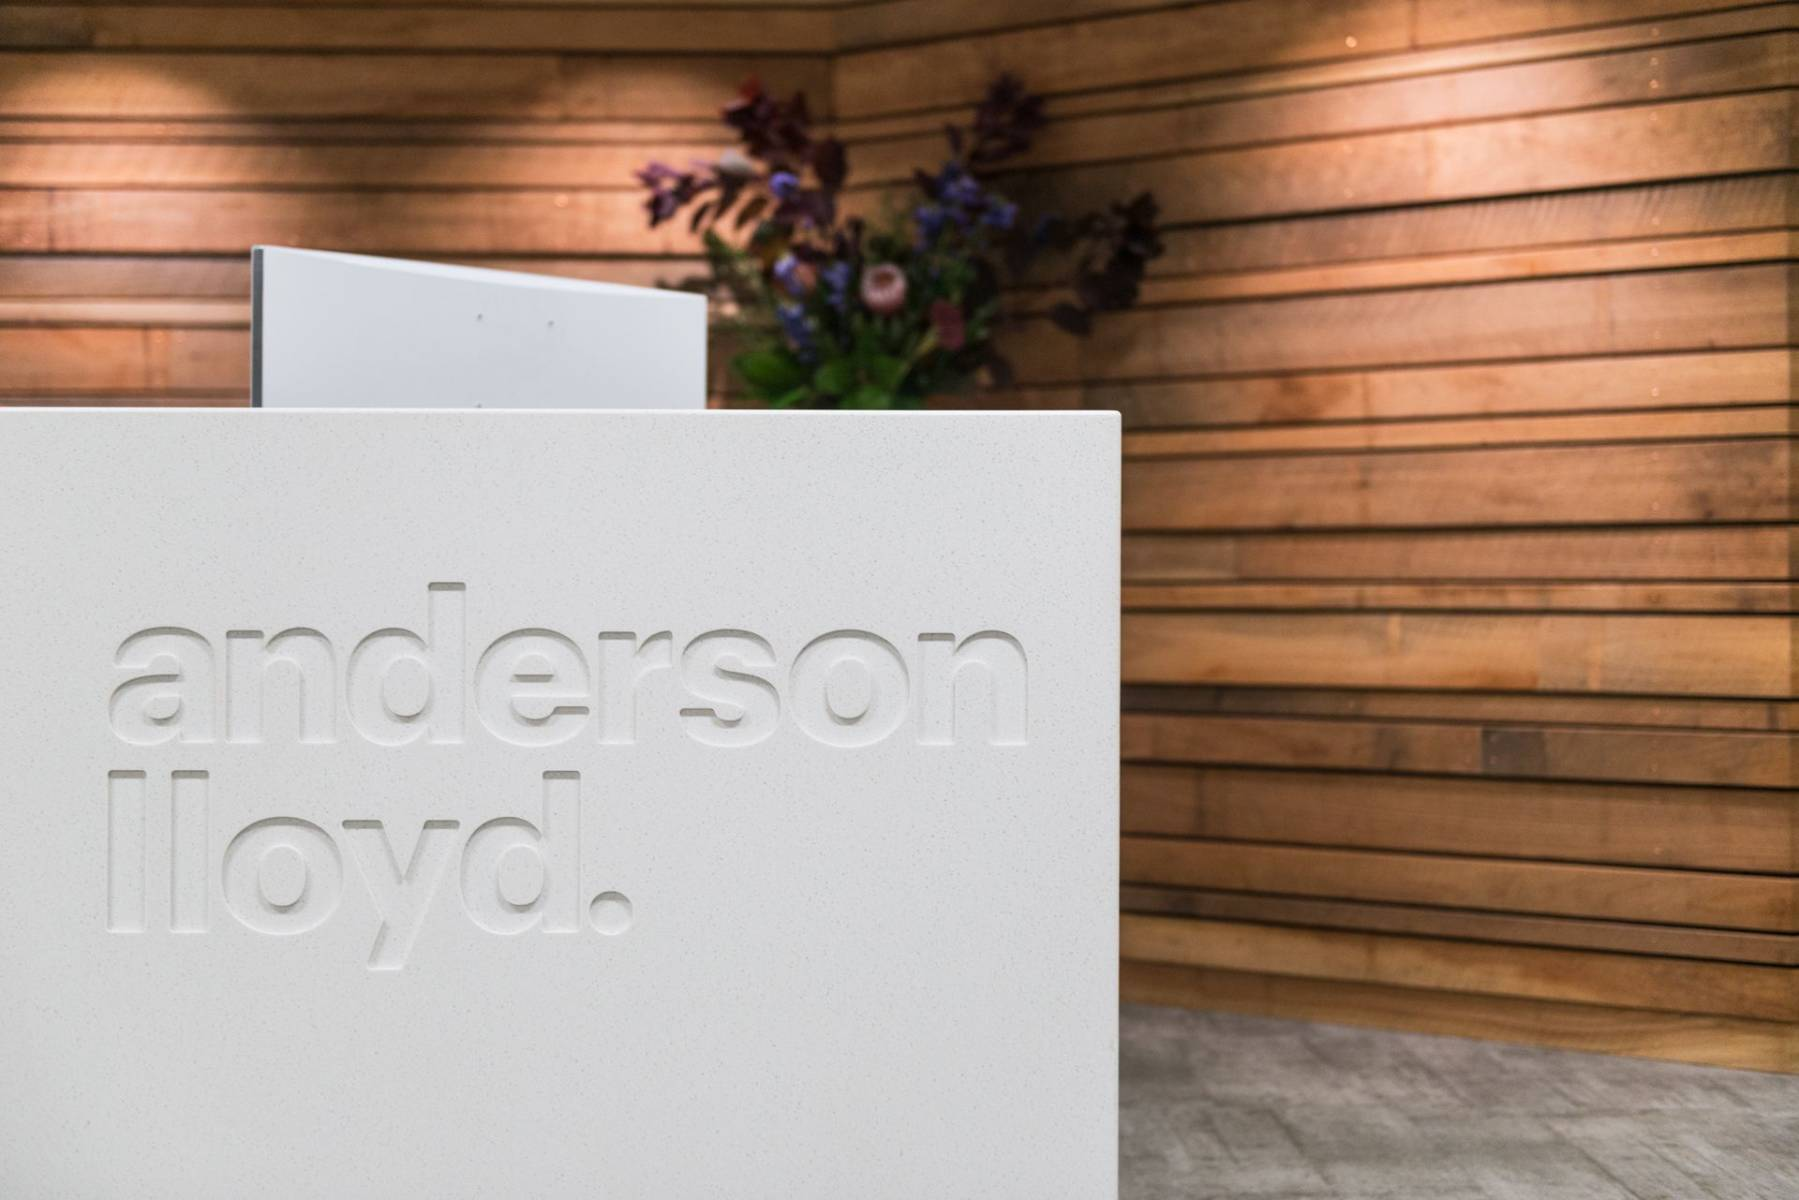 Anderson Lloyd reception